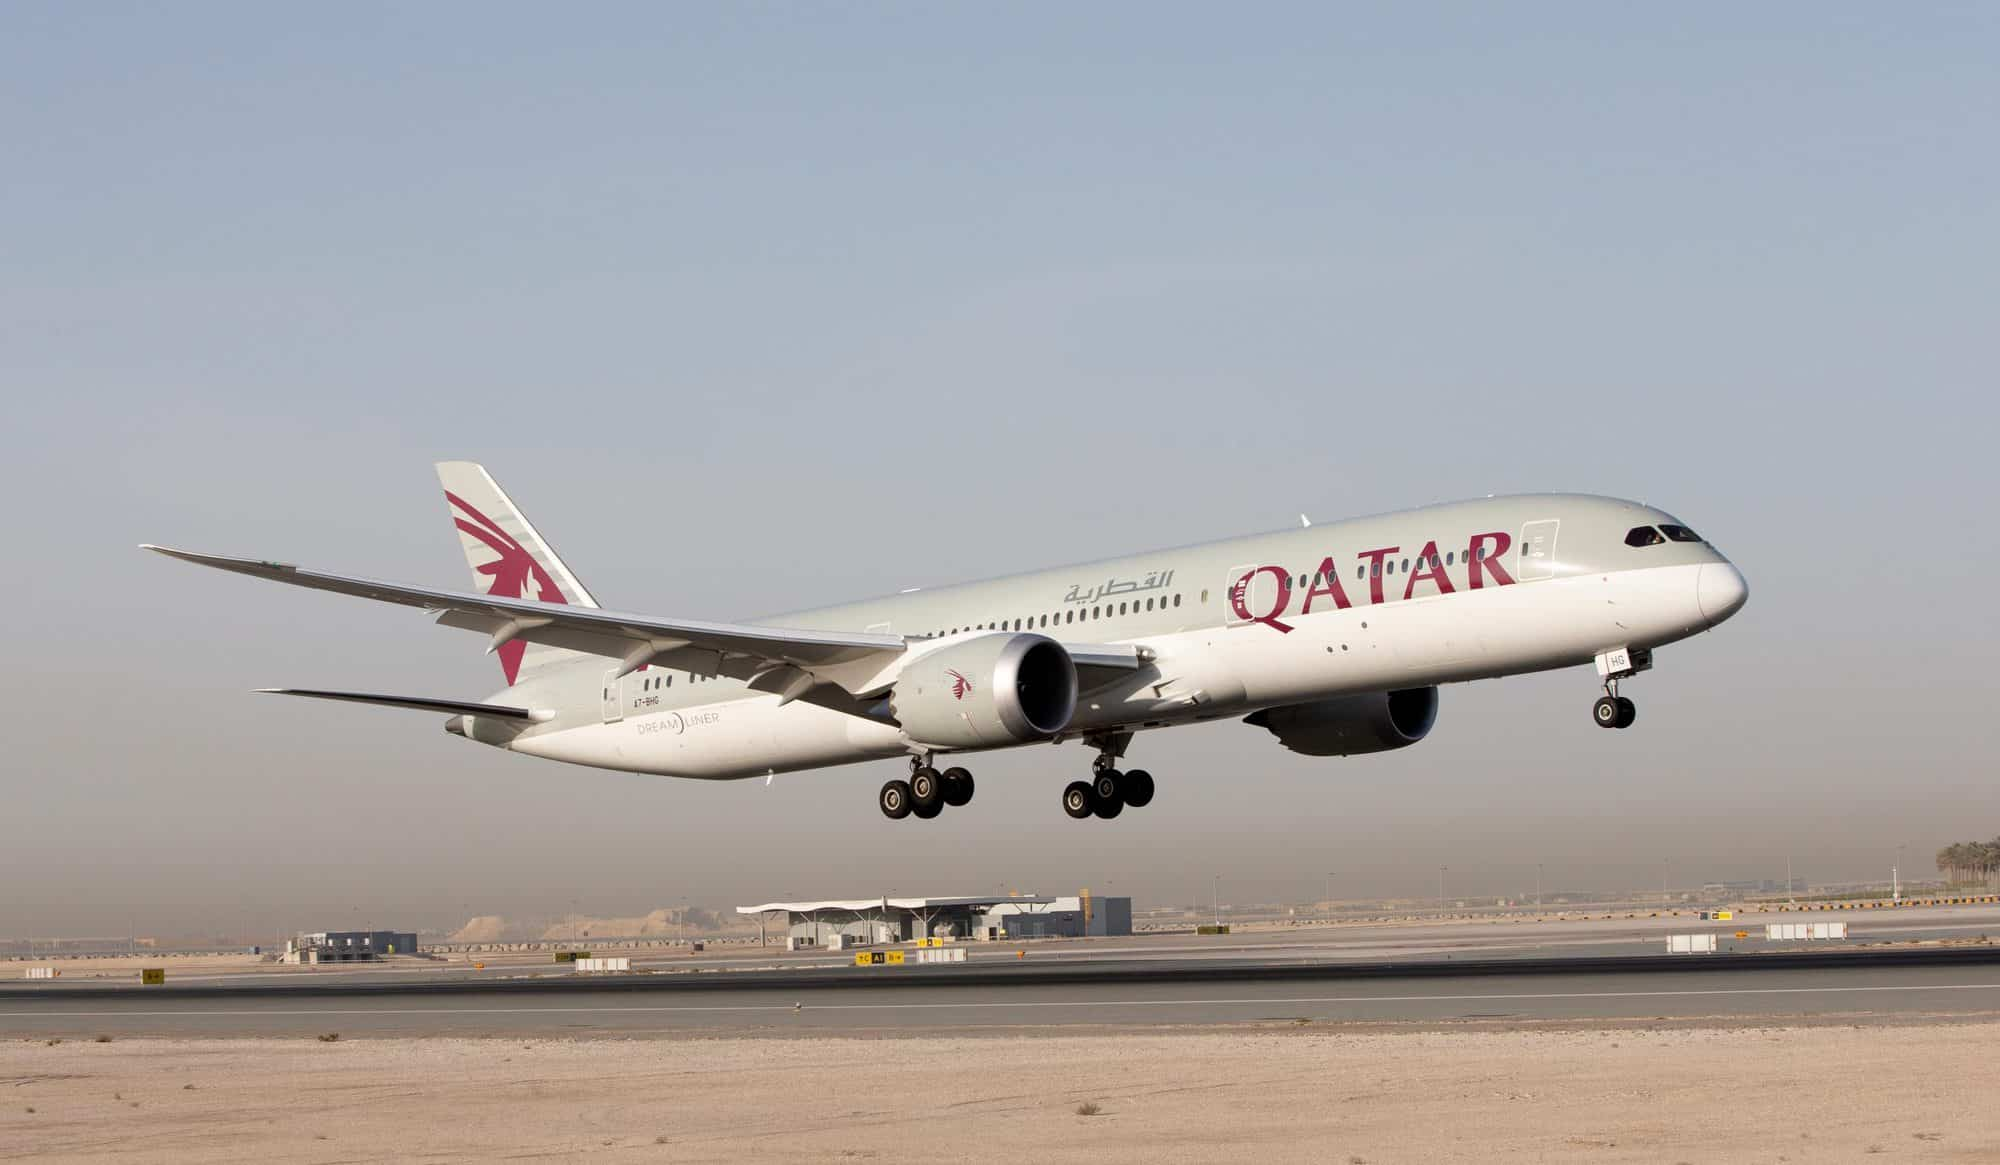 Most Expensive Airlines - Qatar Airways